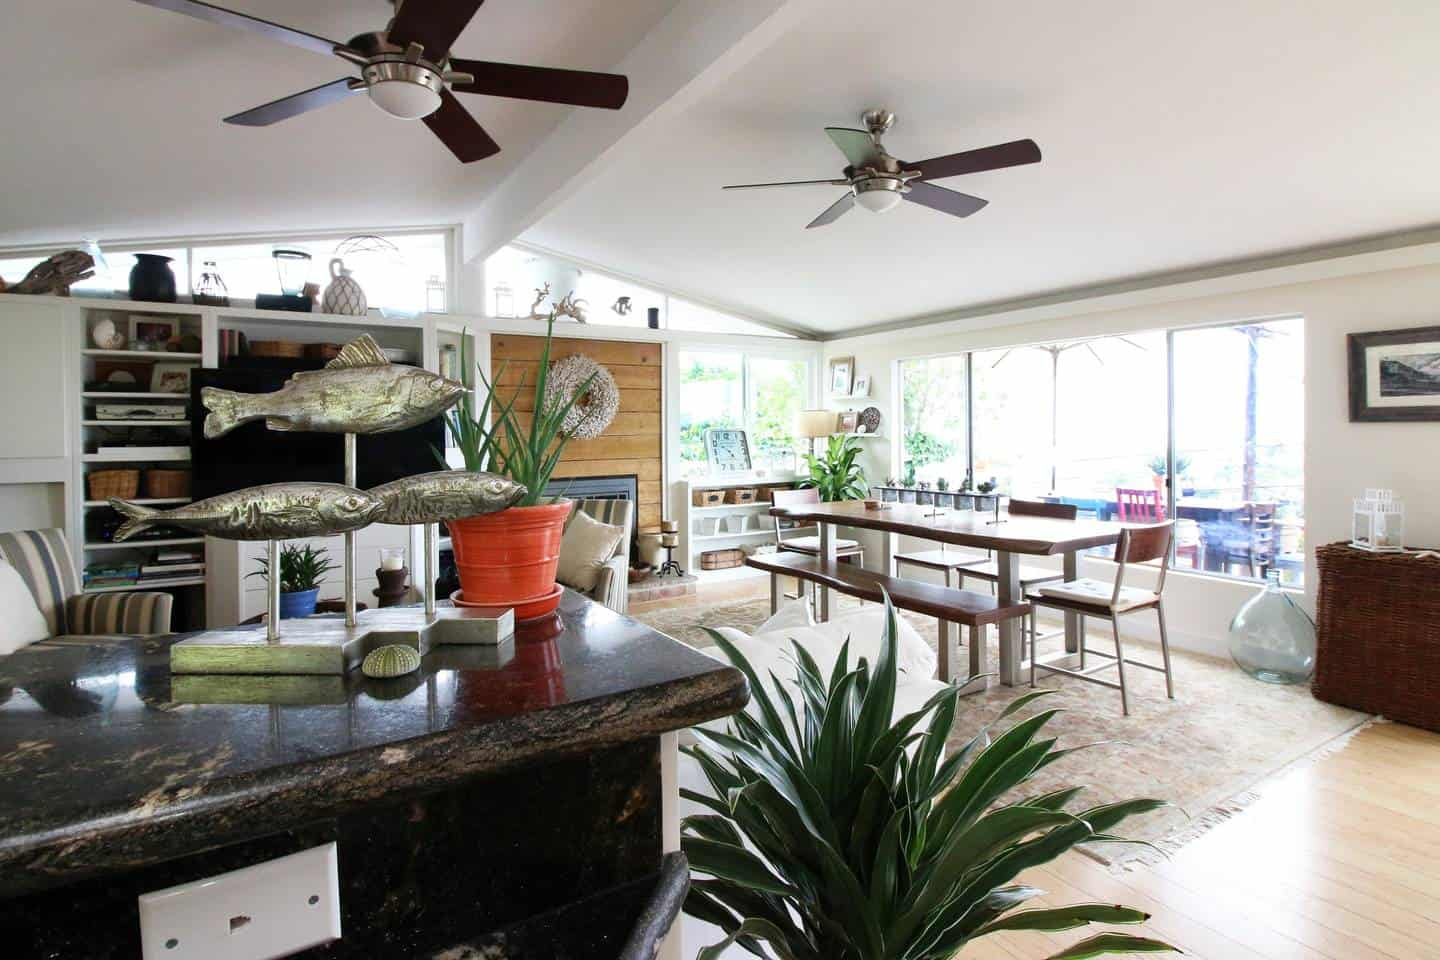 Amazing Marne-la-Vallée Airbnb rental for up to 6 people